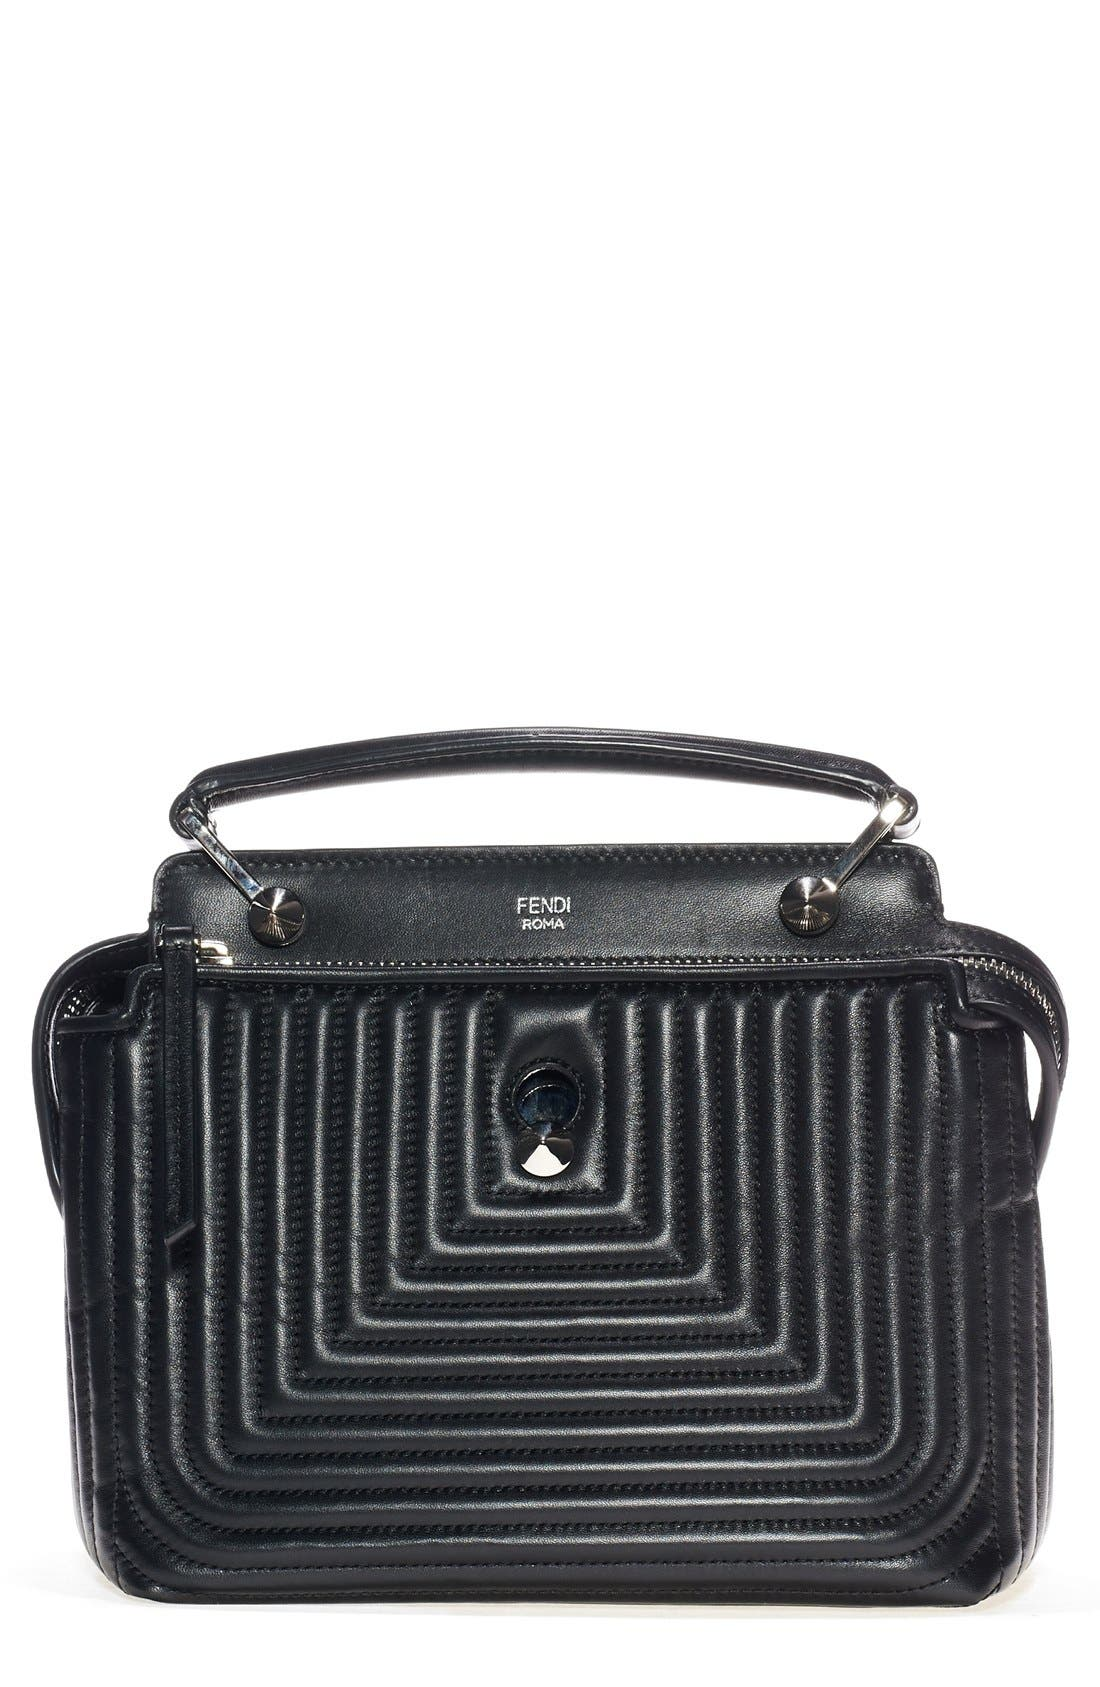 Main Image - Fendi 'DOTCOM Click' Quilted Leather Satchel